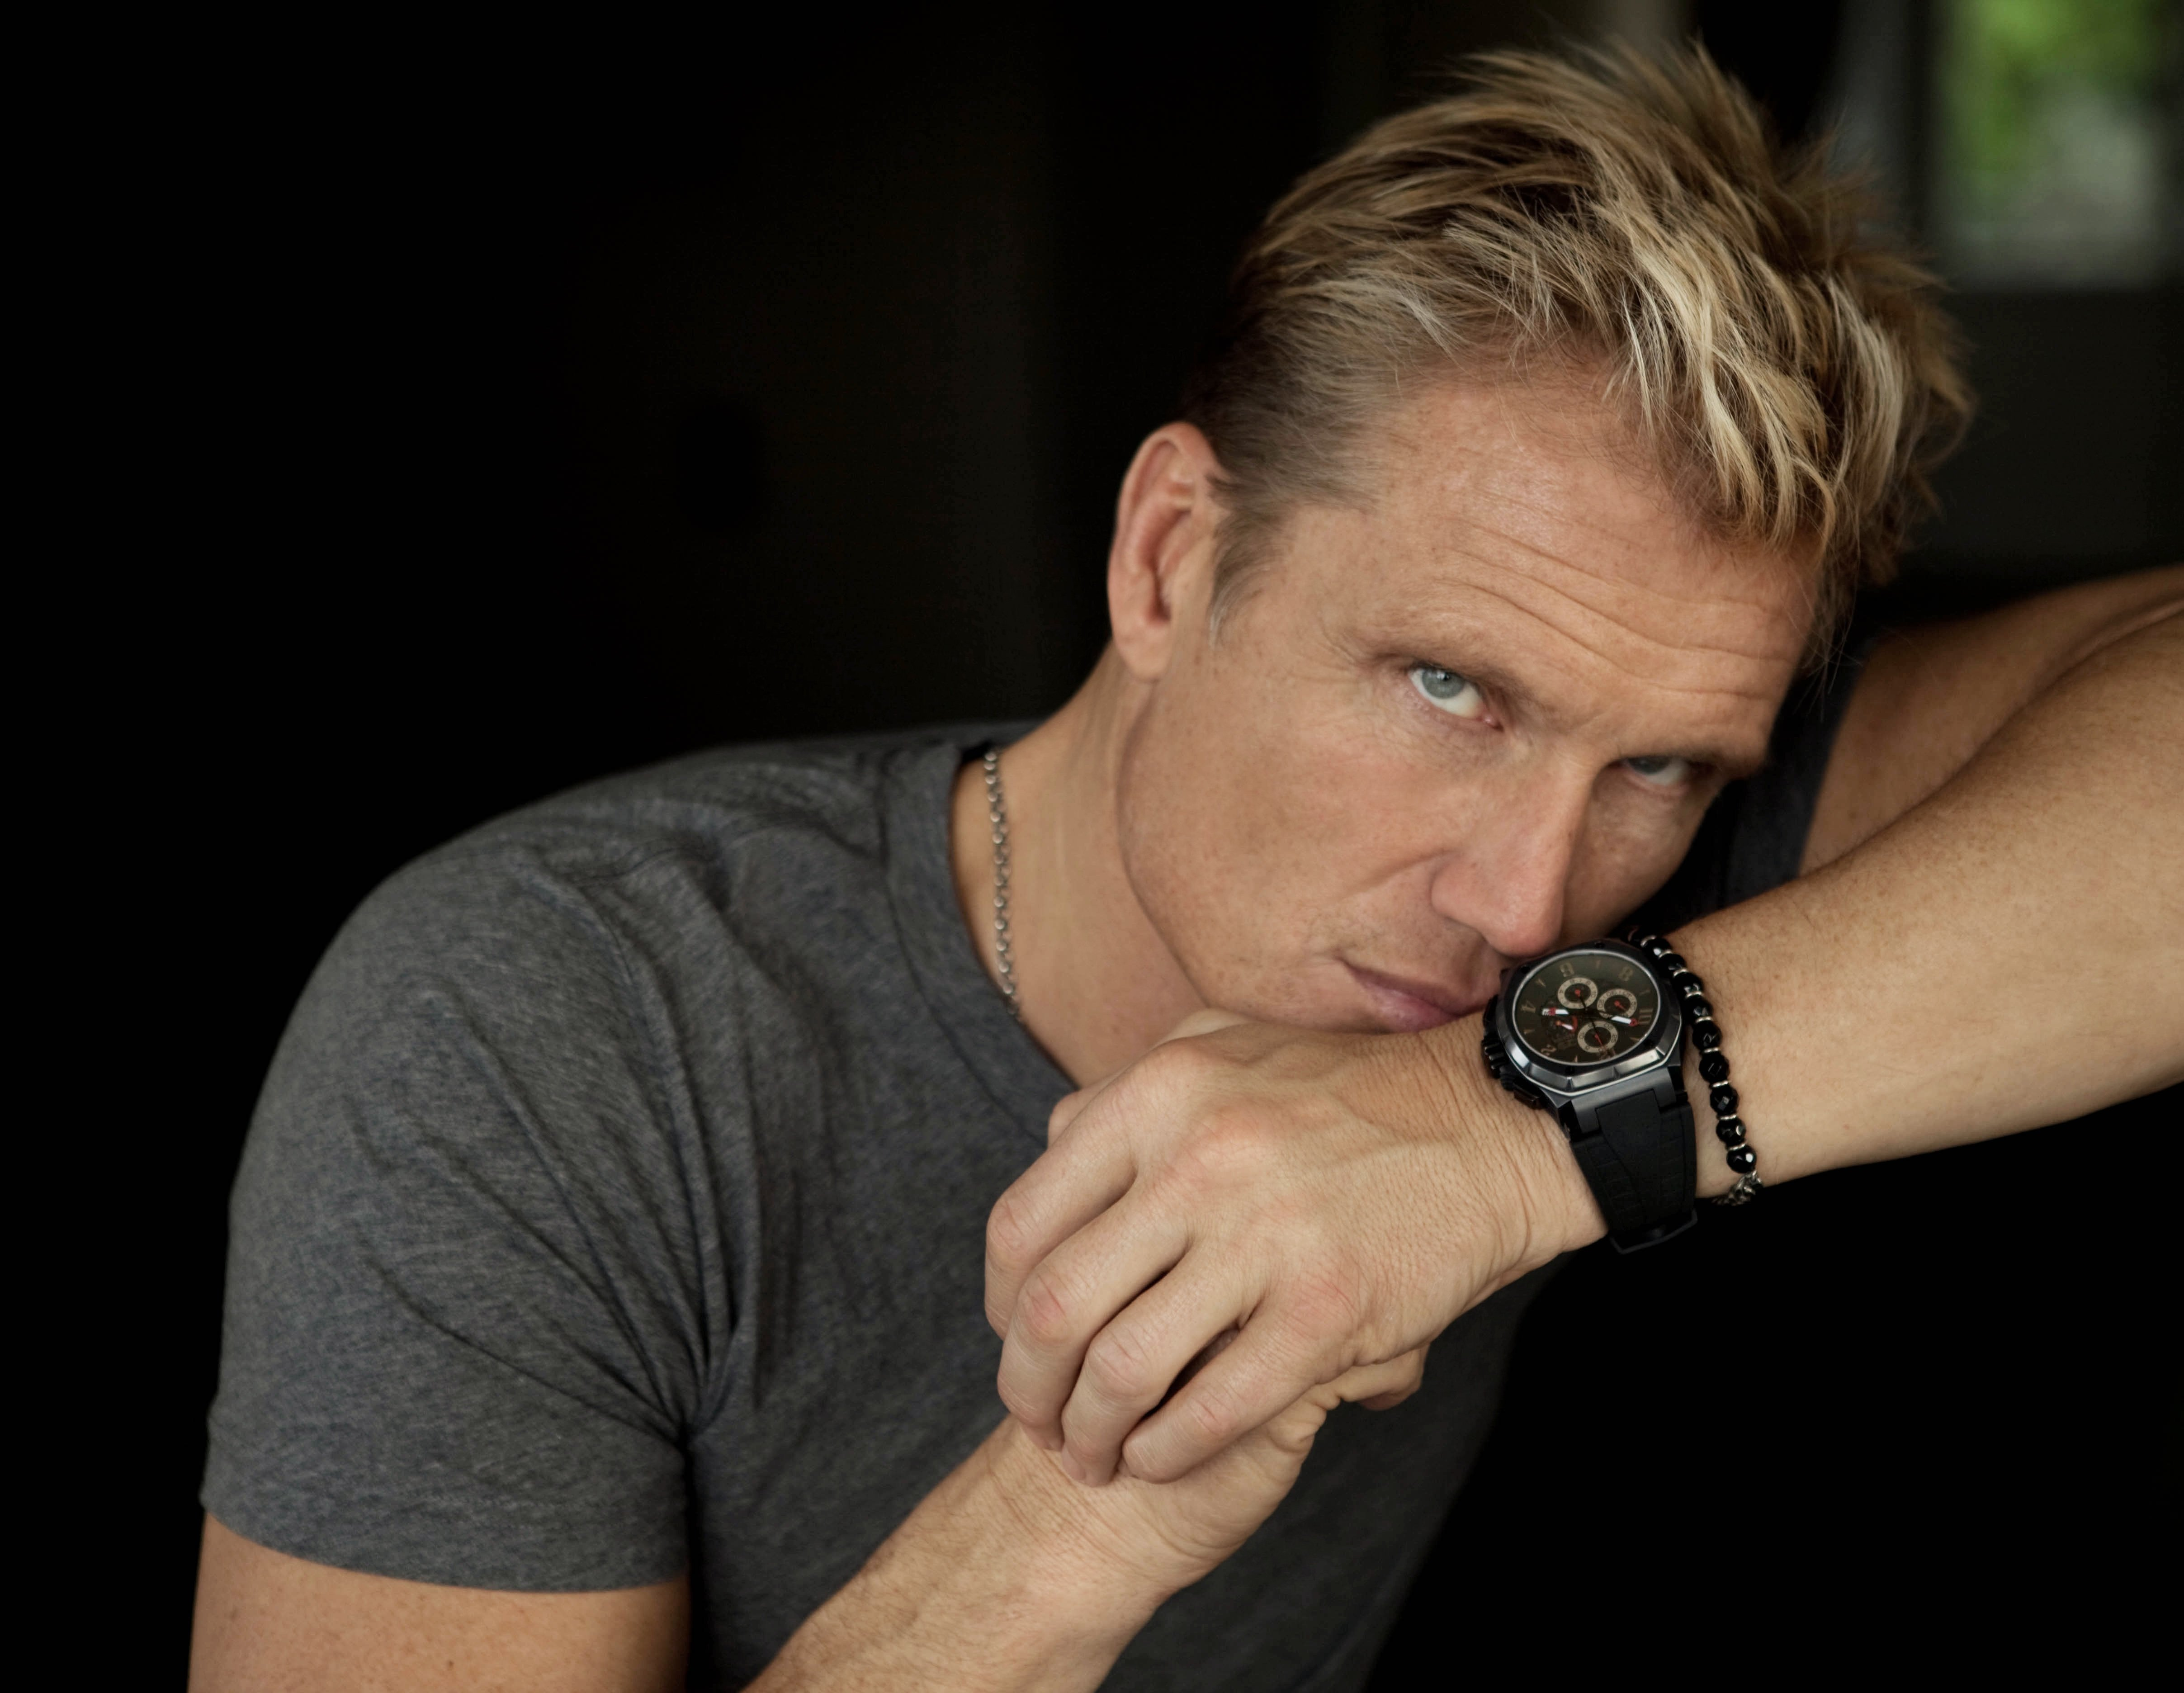 Dolph Lundgren photo, pics, wallpaper - photo #